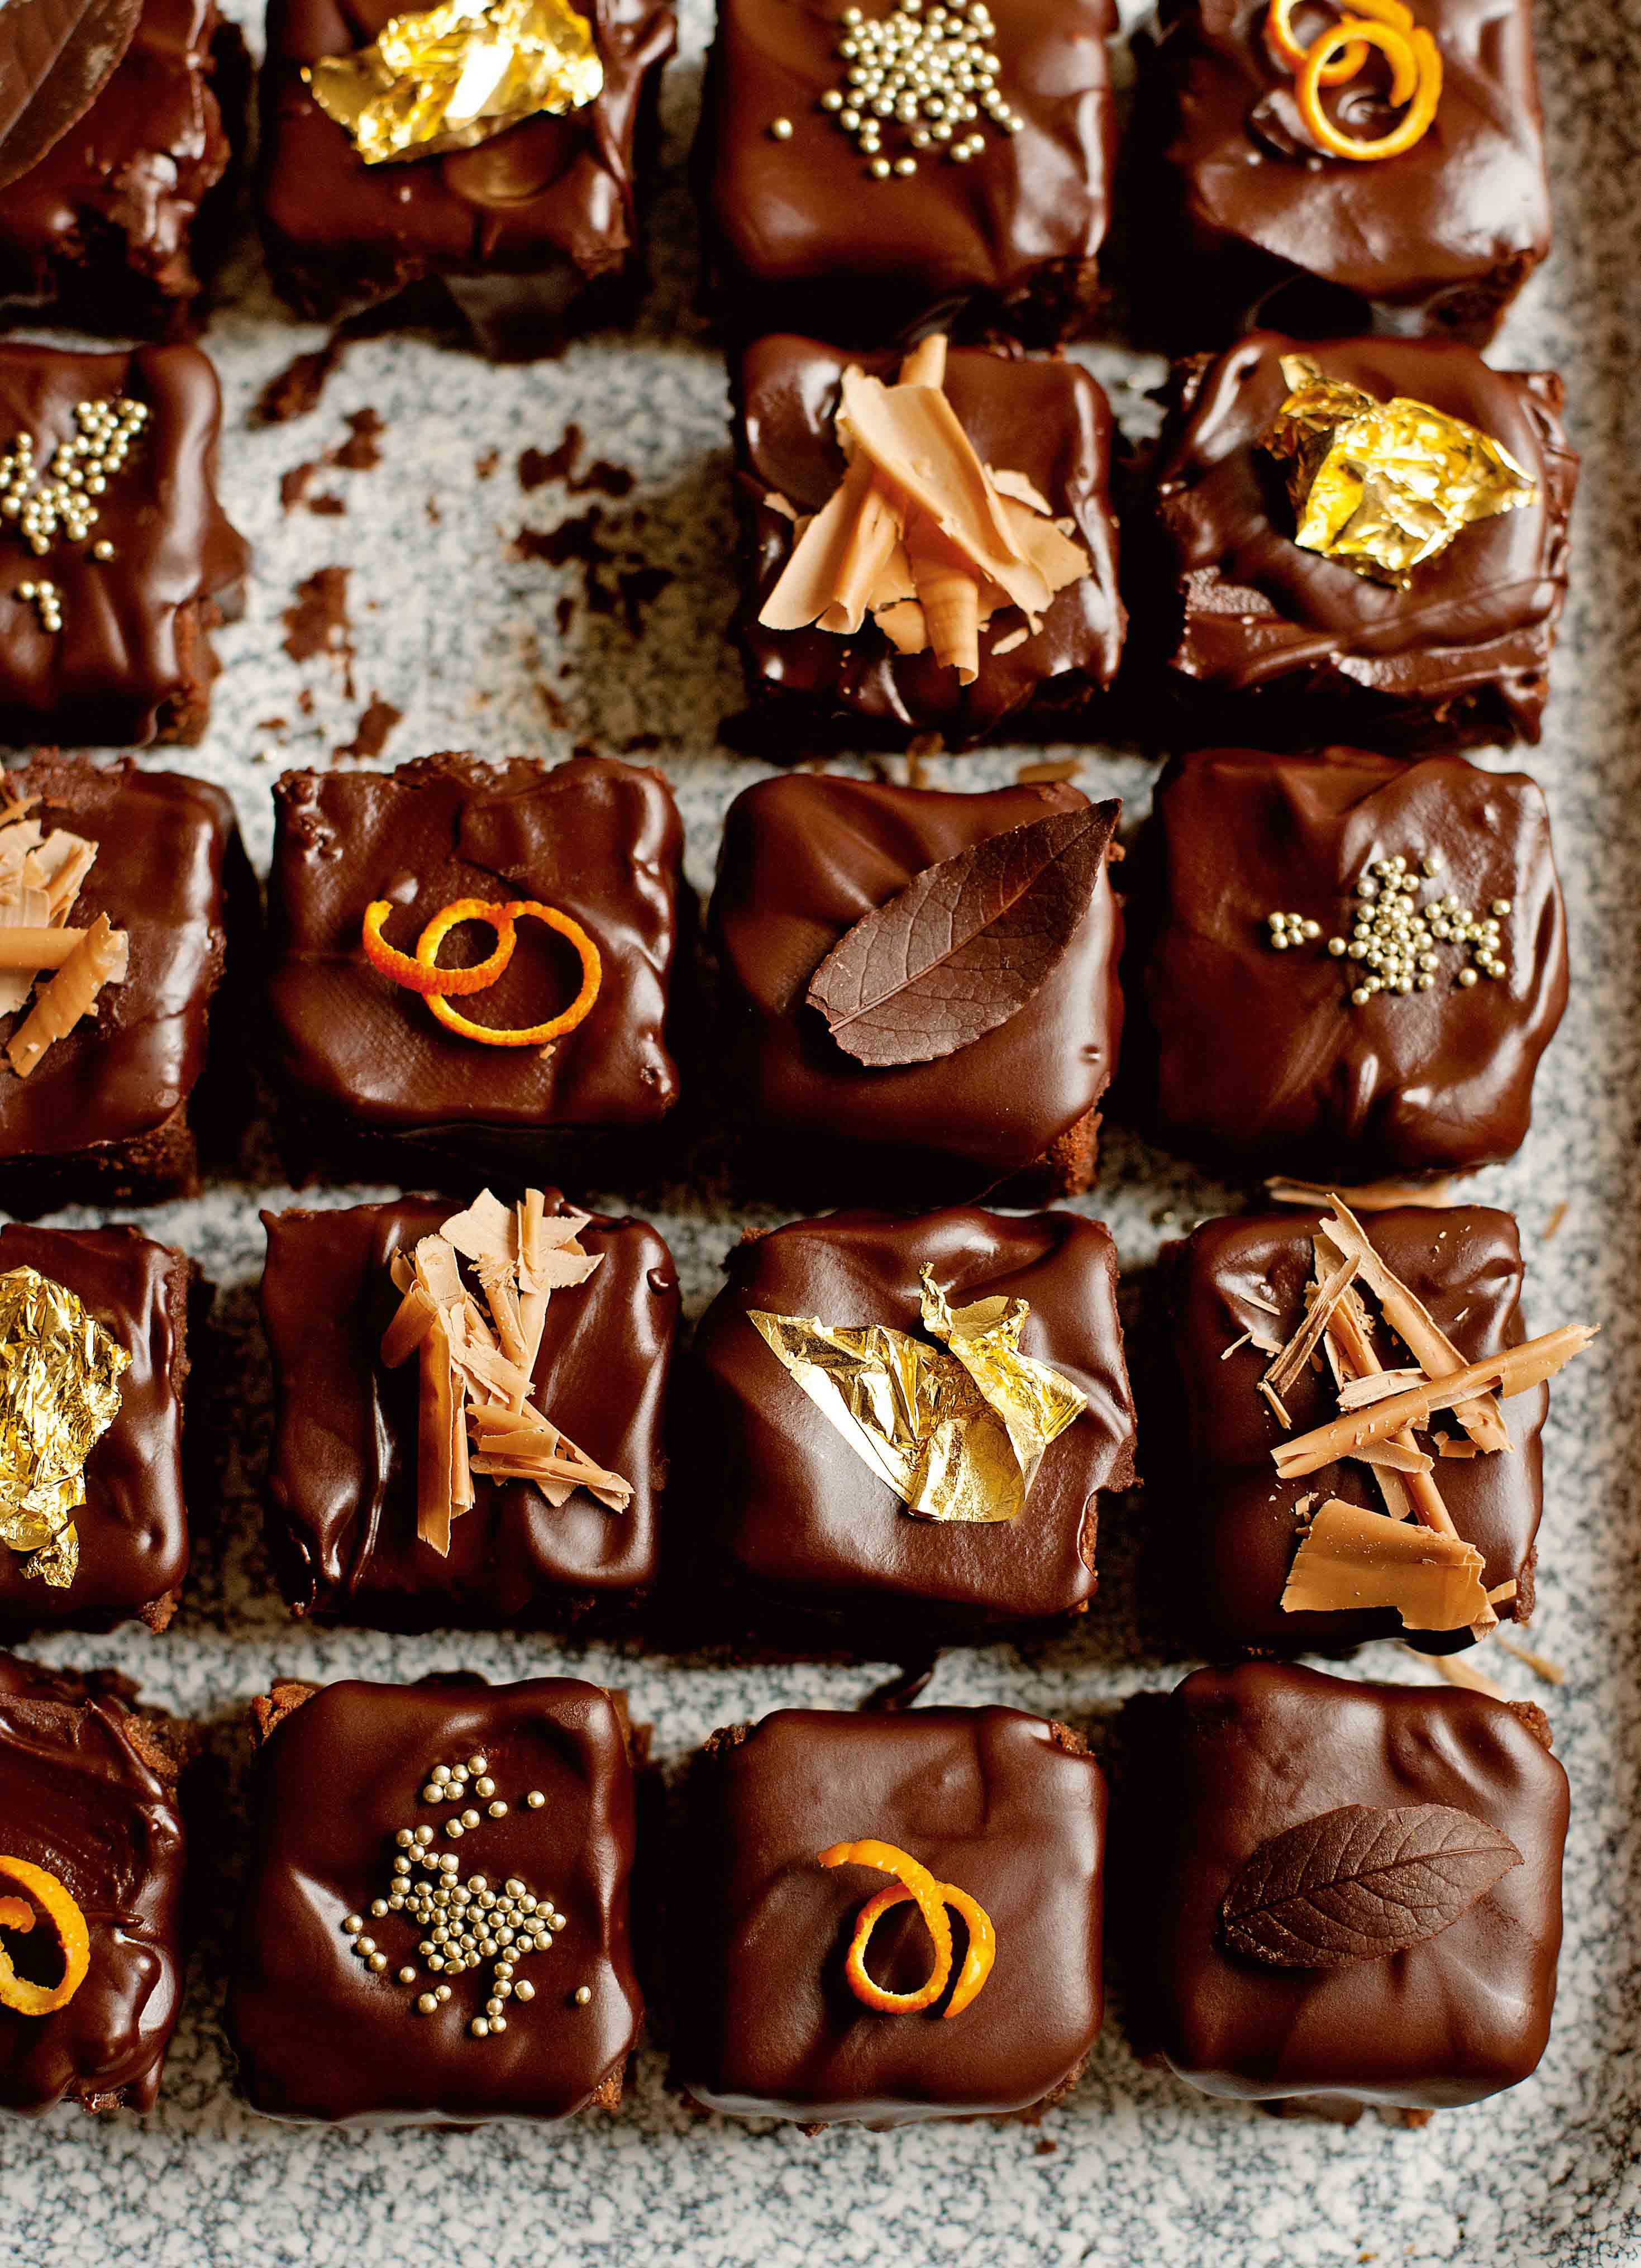 Glazed chocolate-orange cubes